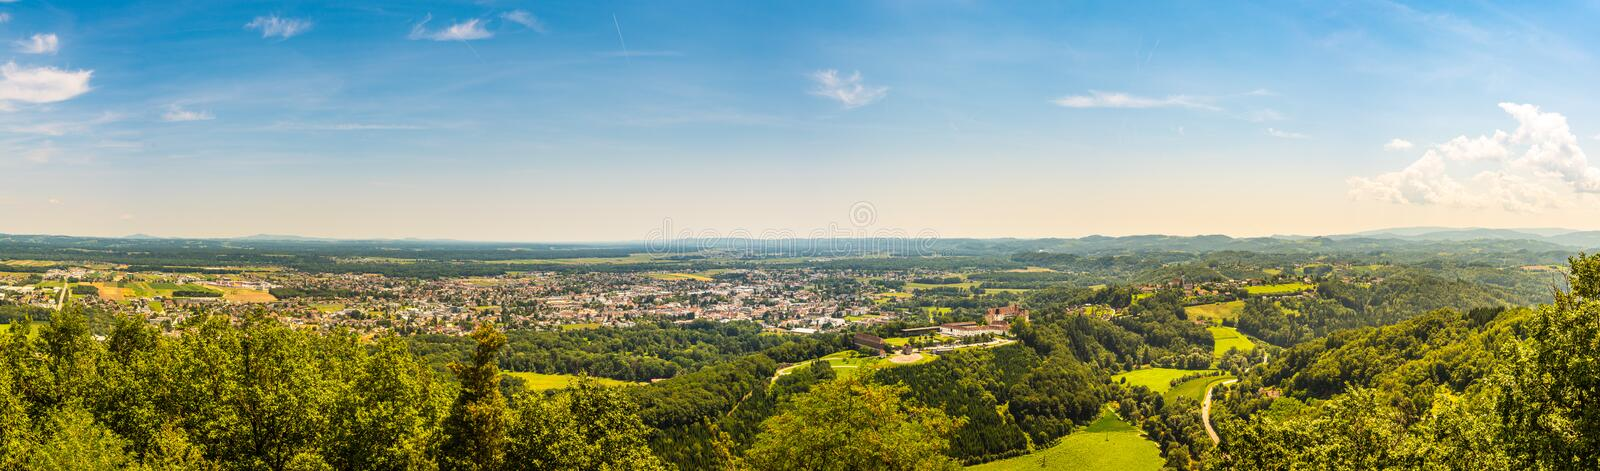 Panorama of Leibnitz in south styria in Austria. Landscape of Leibnitz area from Kogelberg. Tourist destination, Green hills of grape crops and mountains stock photos